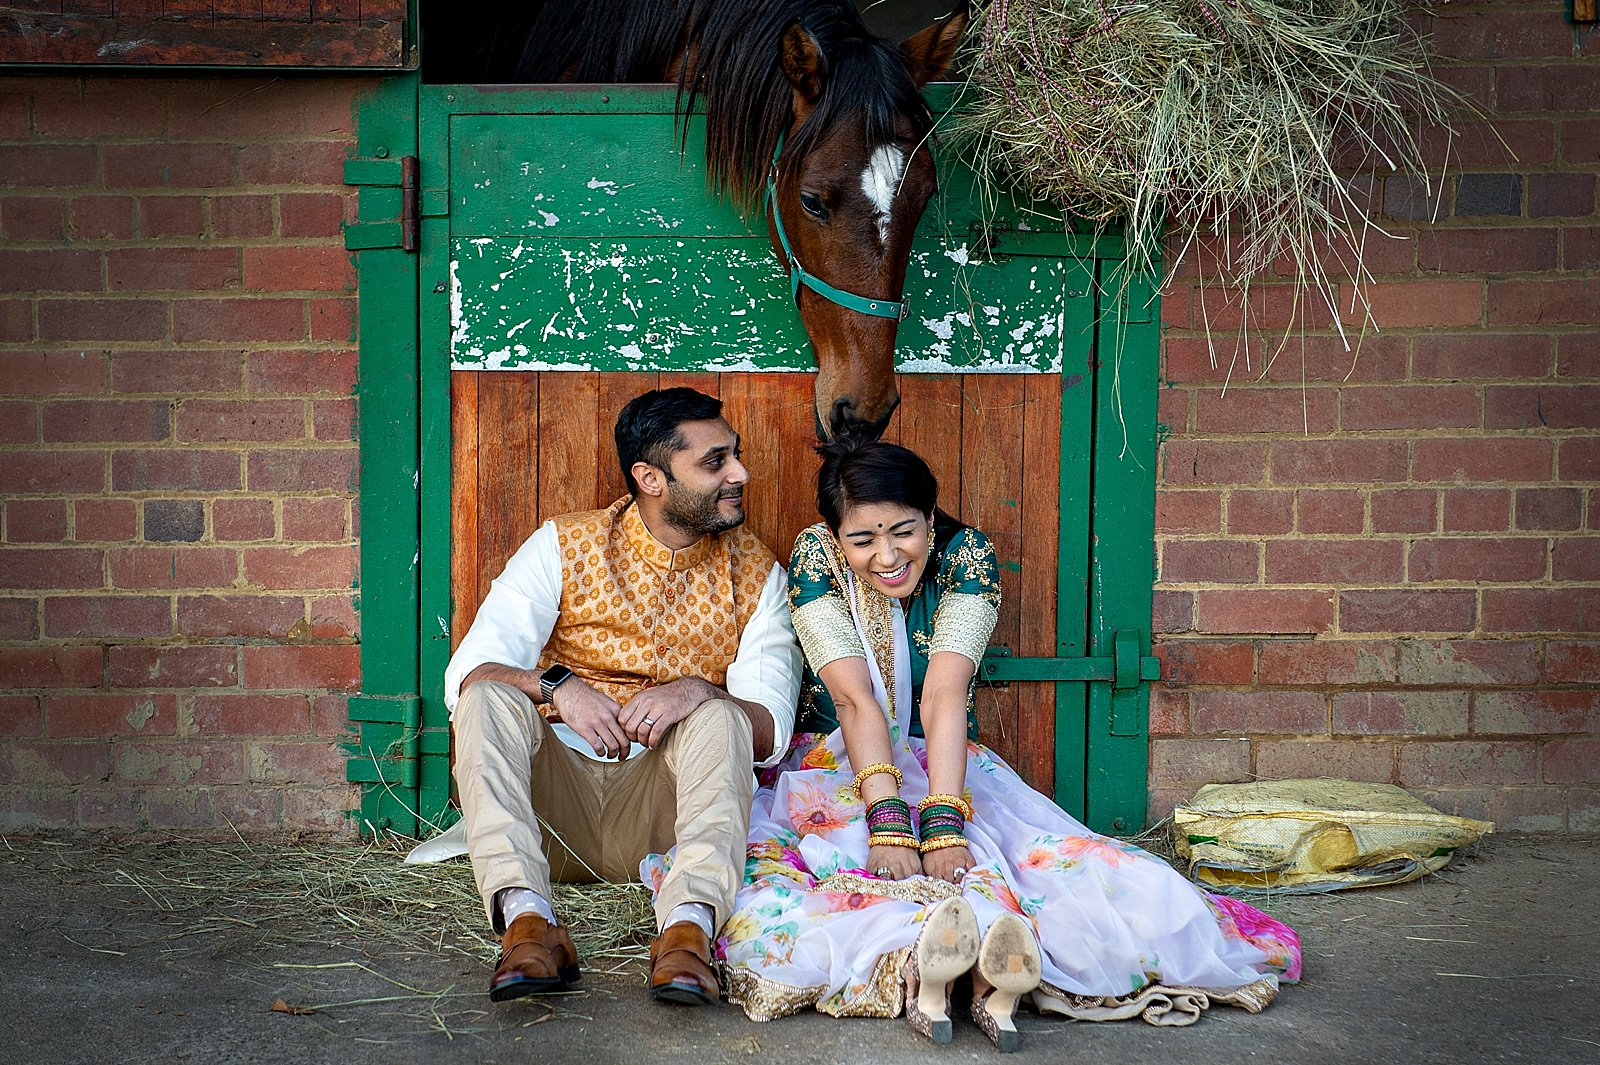 Creative Hindu wedding shot by top South African Creative photographer, Jacki Bruniquel. Shot at Hartford House at sunset with horses.